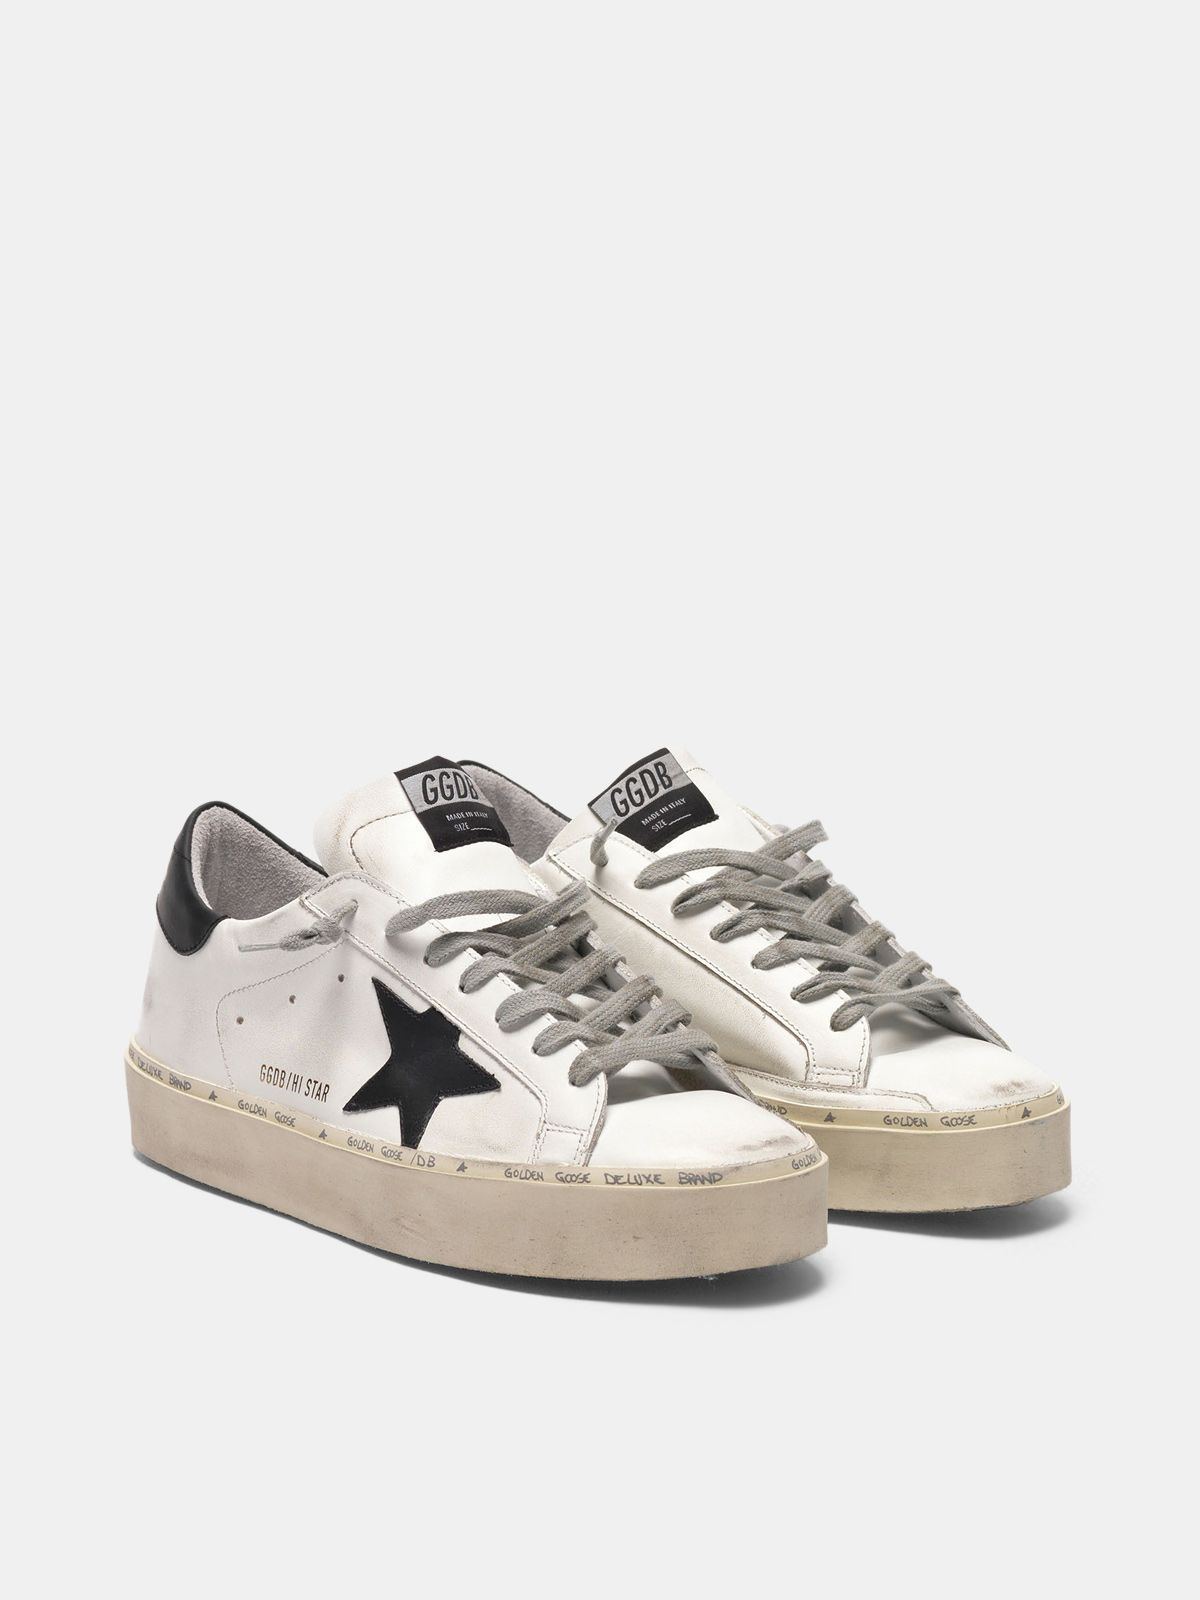 Golden Goose - Hi Star sneakers in leather with black star in